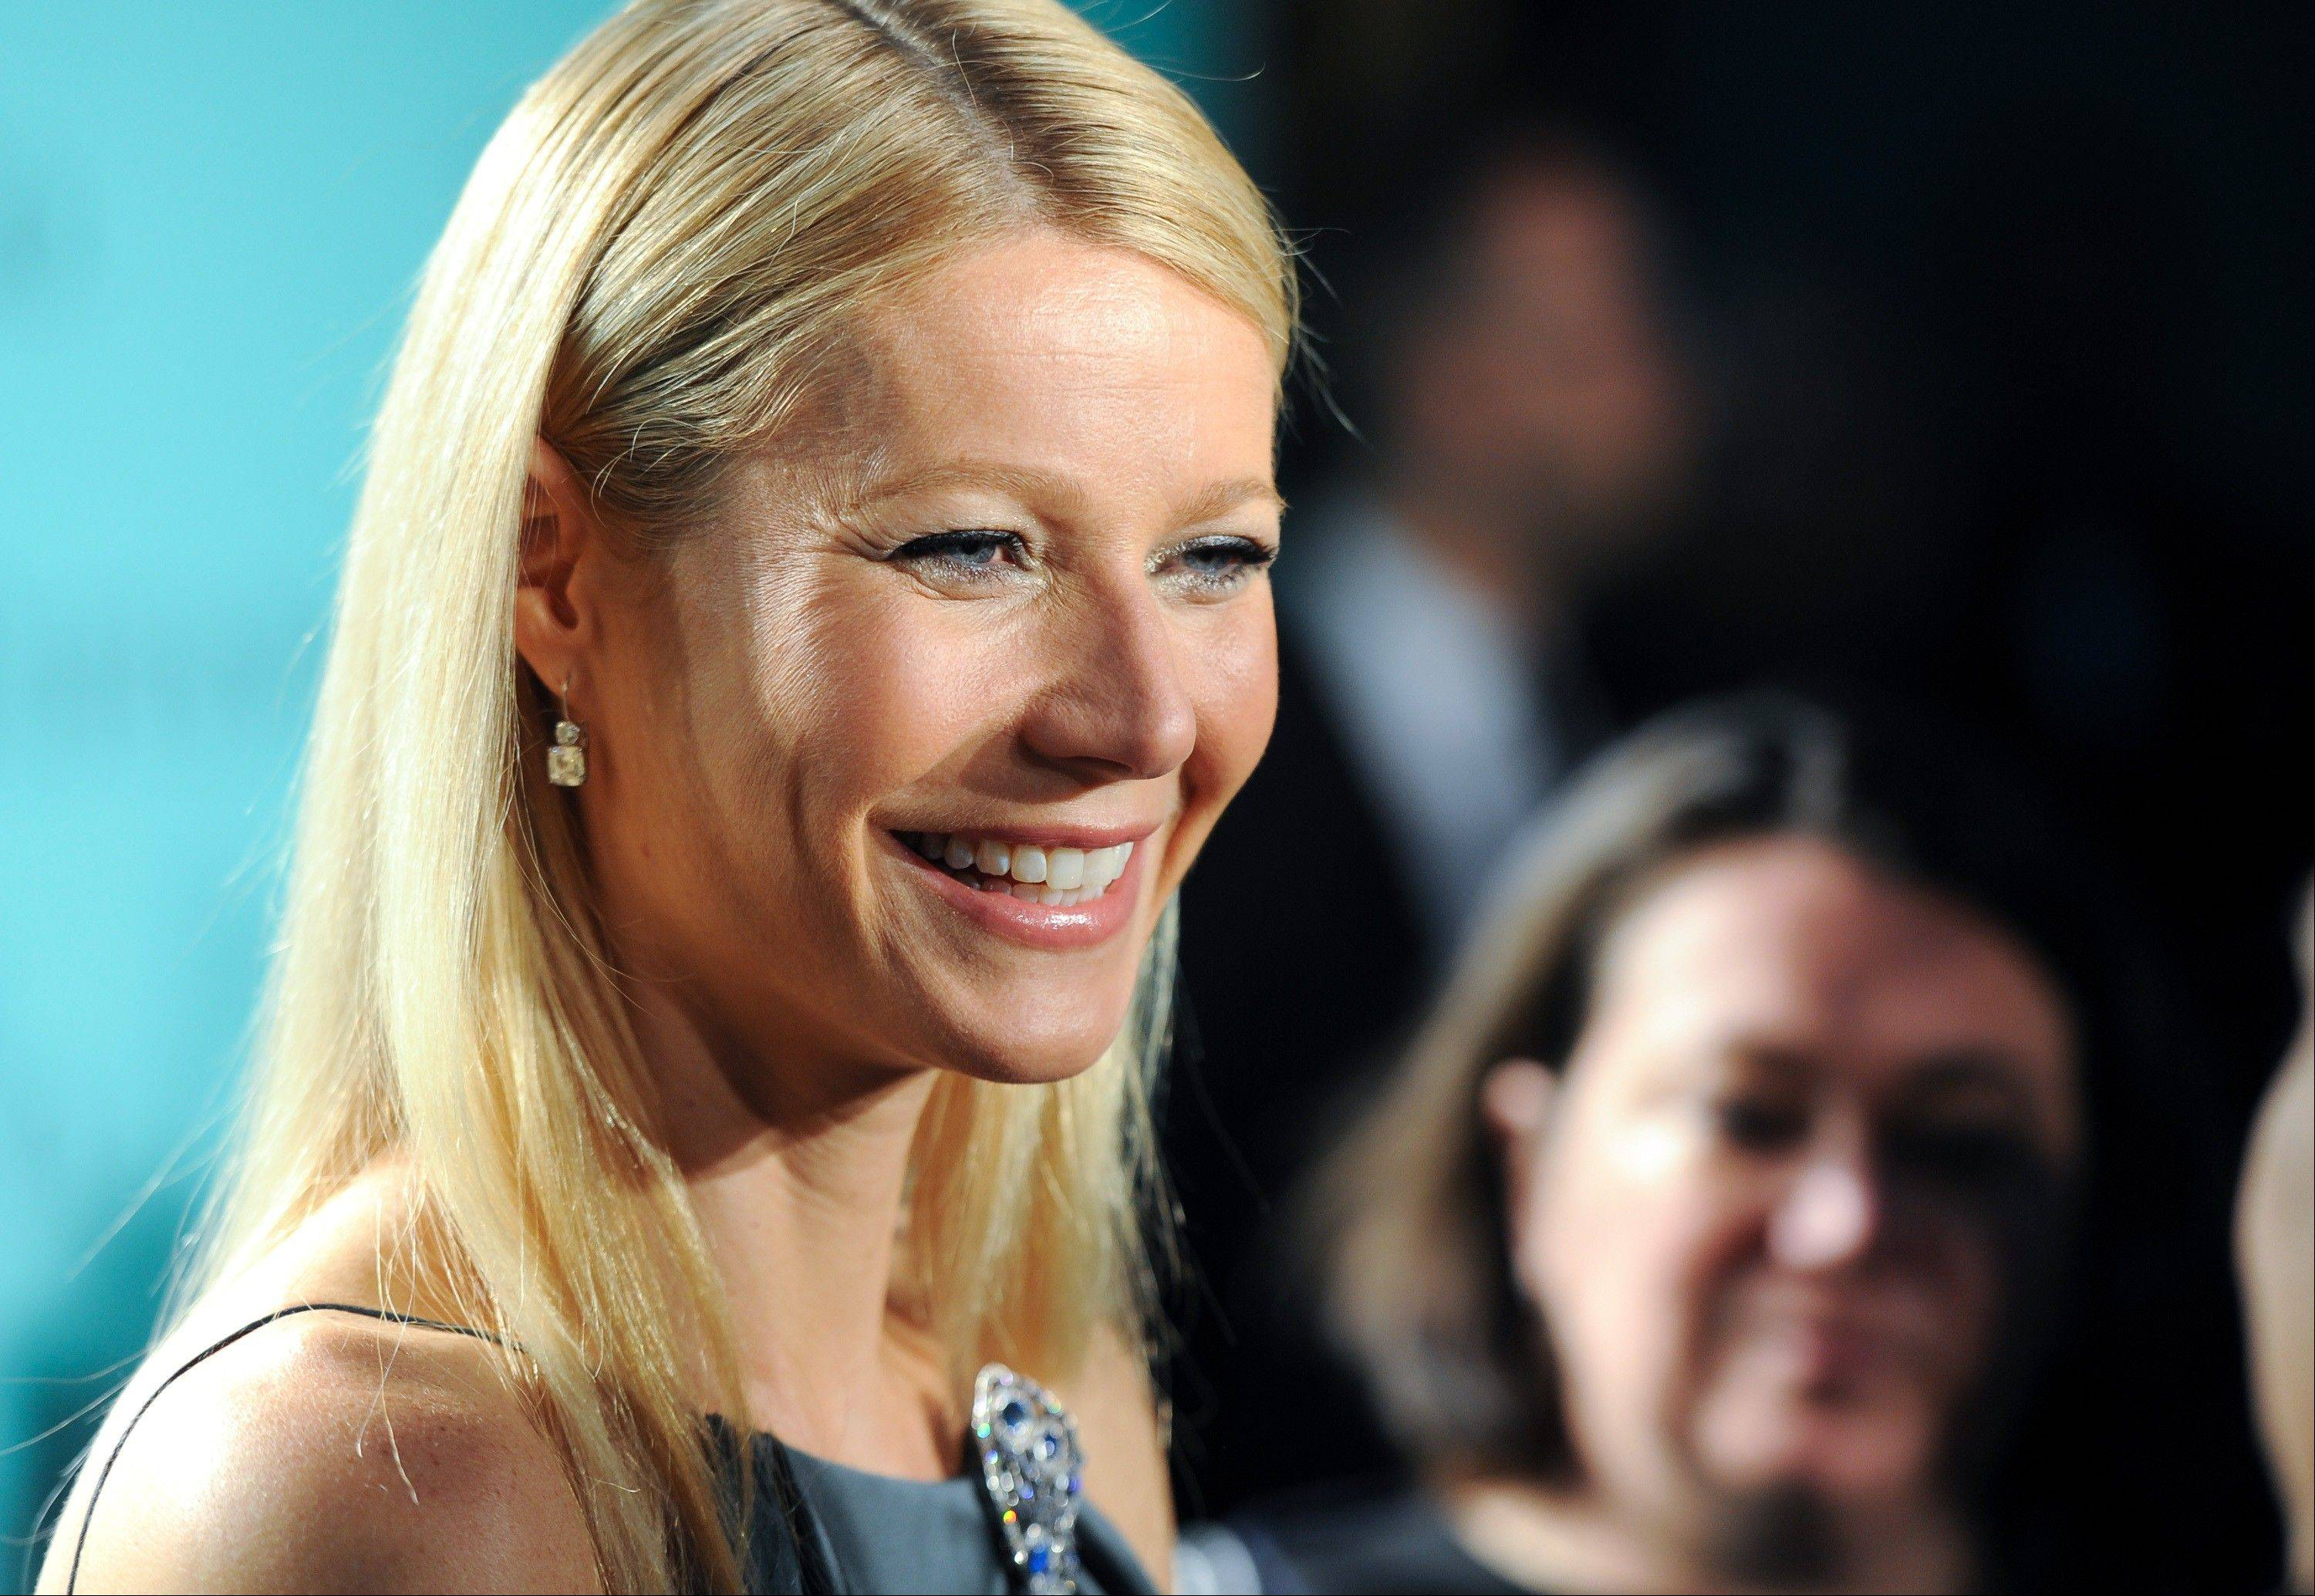 People magazine has named actress Gwyneth Paltrow as the World's Most Beautiful Woman for 2013.